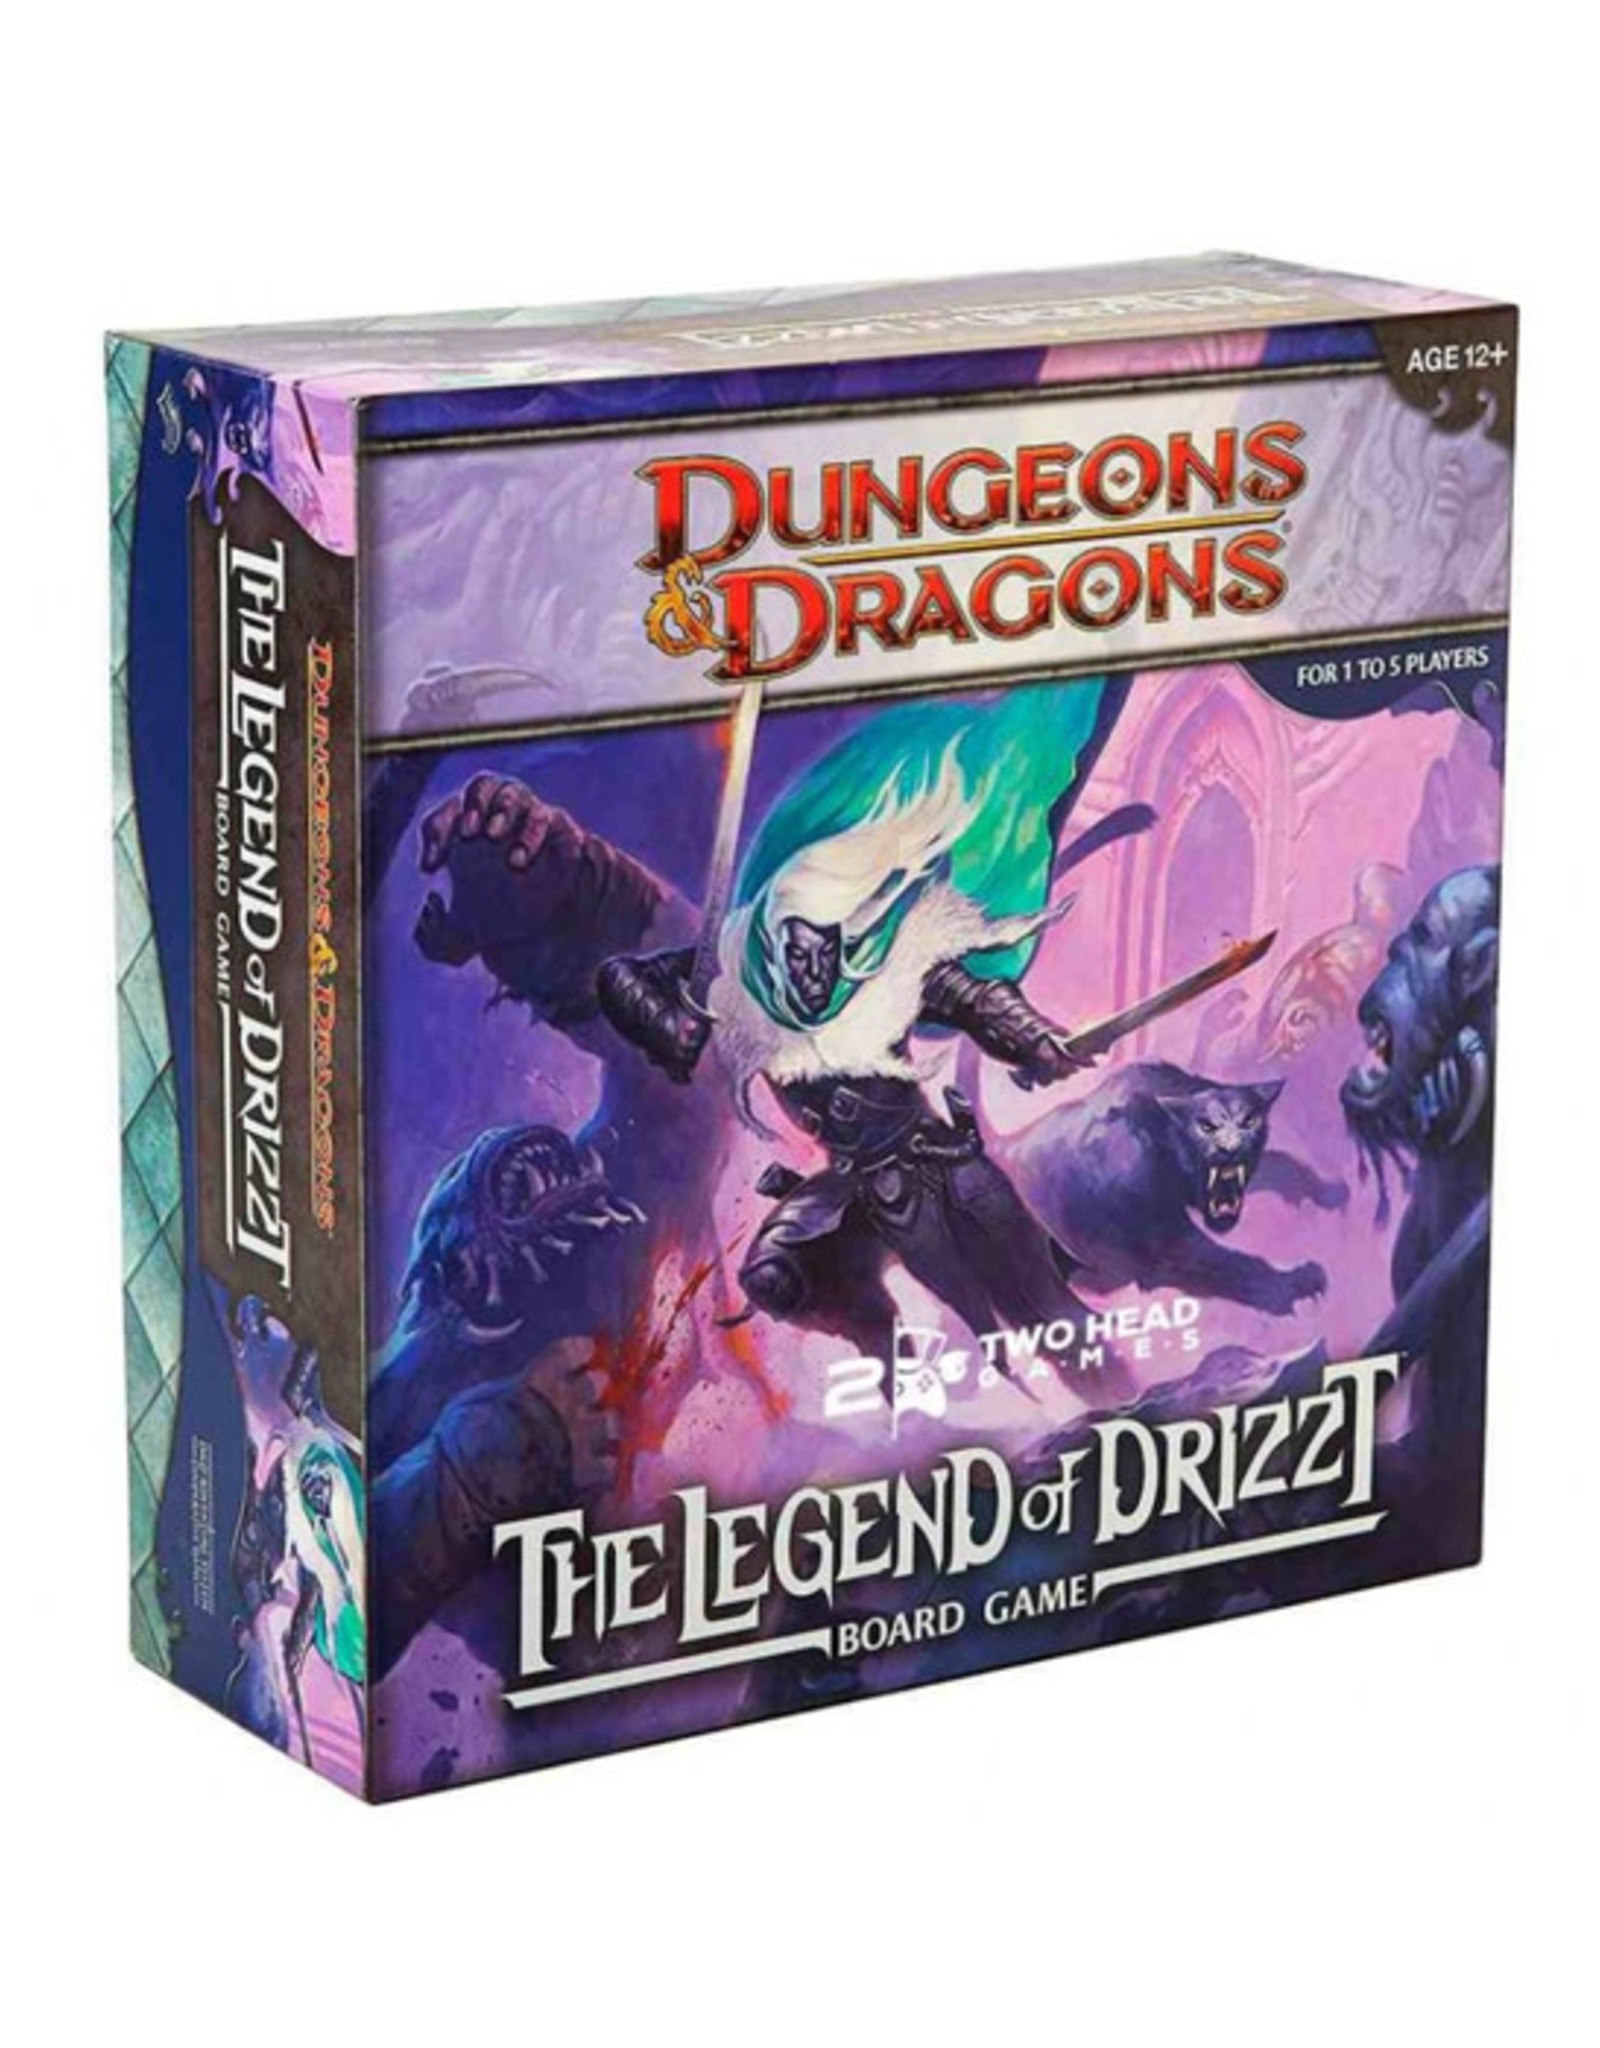 Dungeons & Dragons Dungeons & Dragons: Legend of Drizzt Board Game